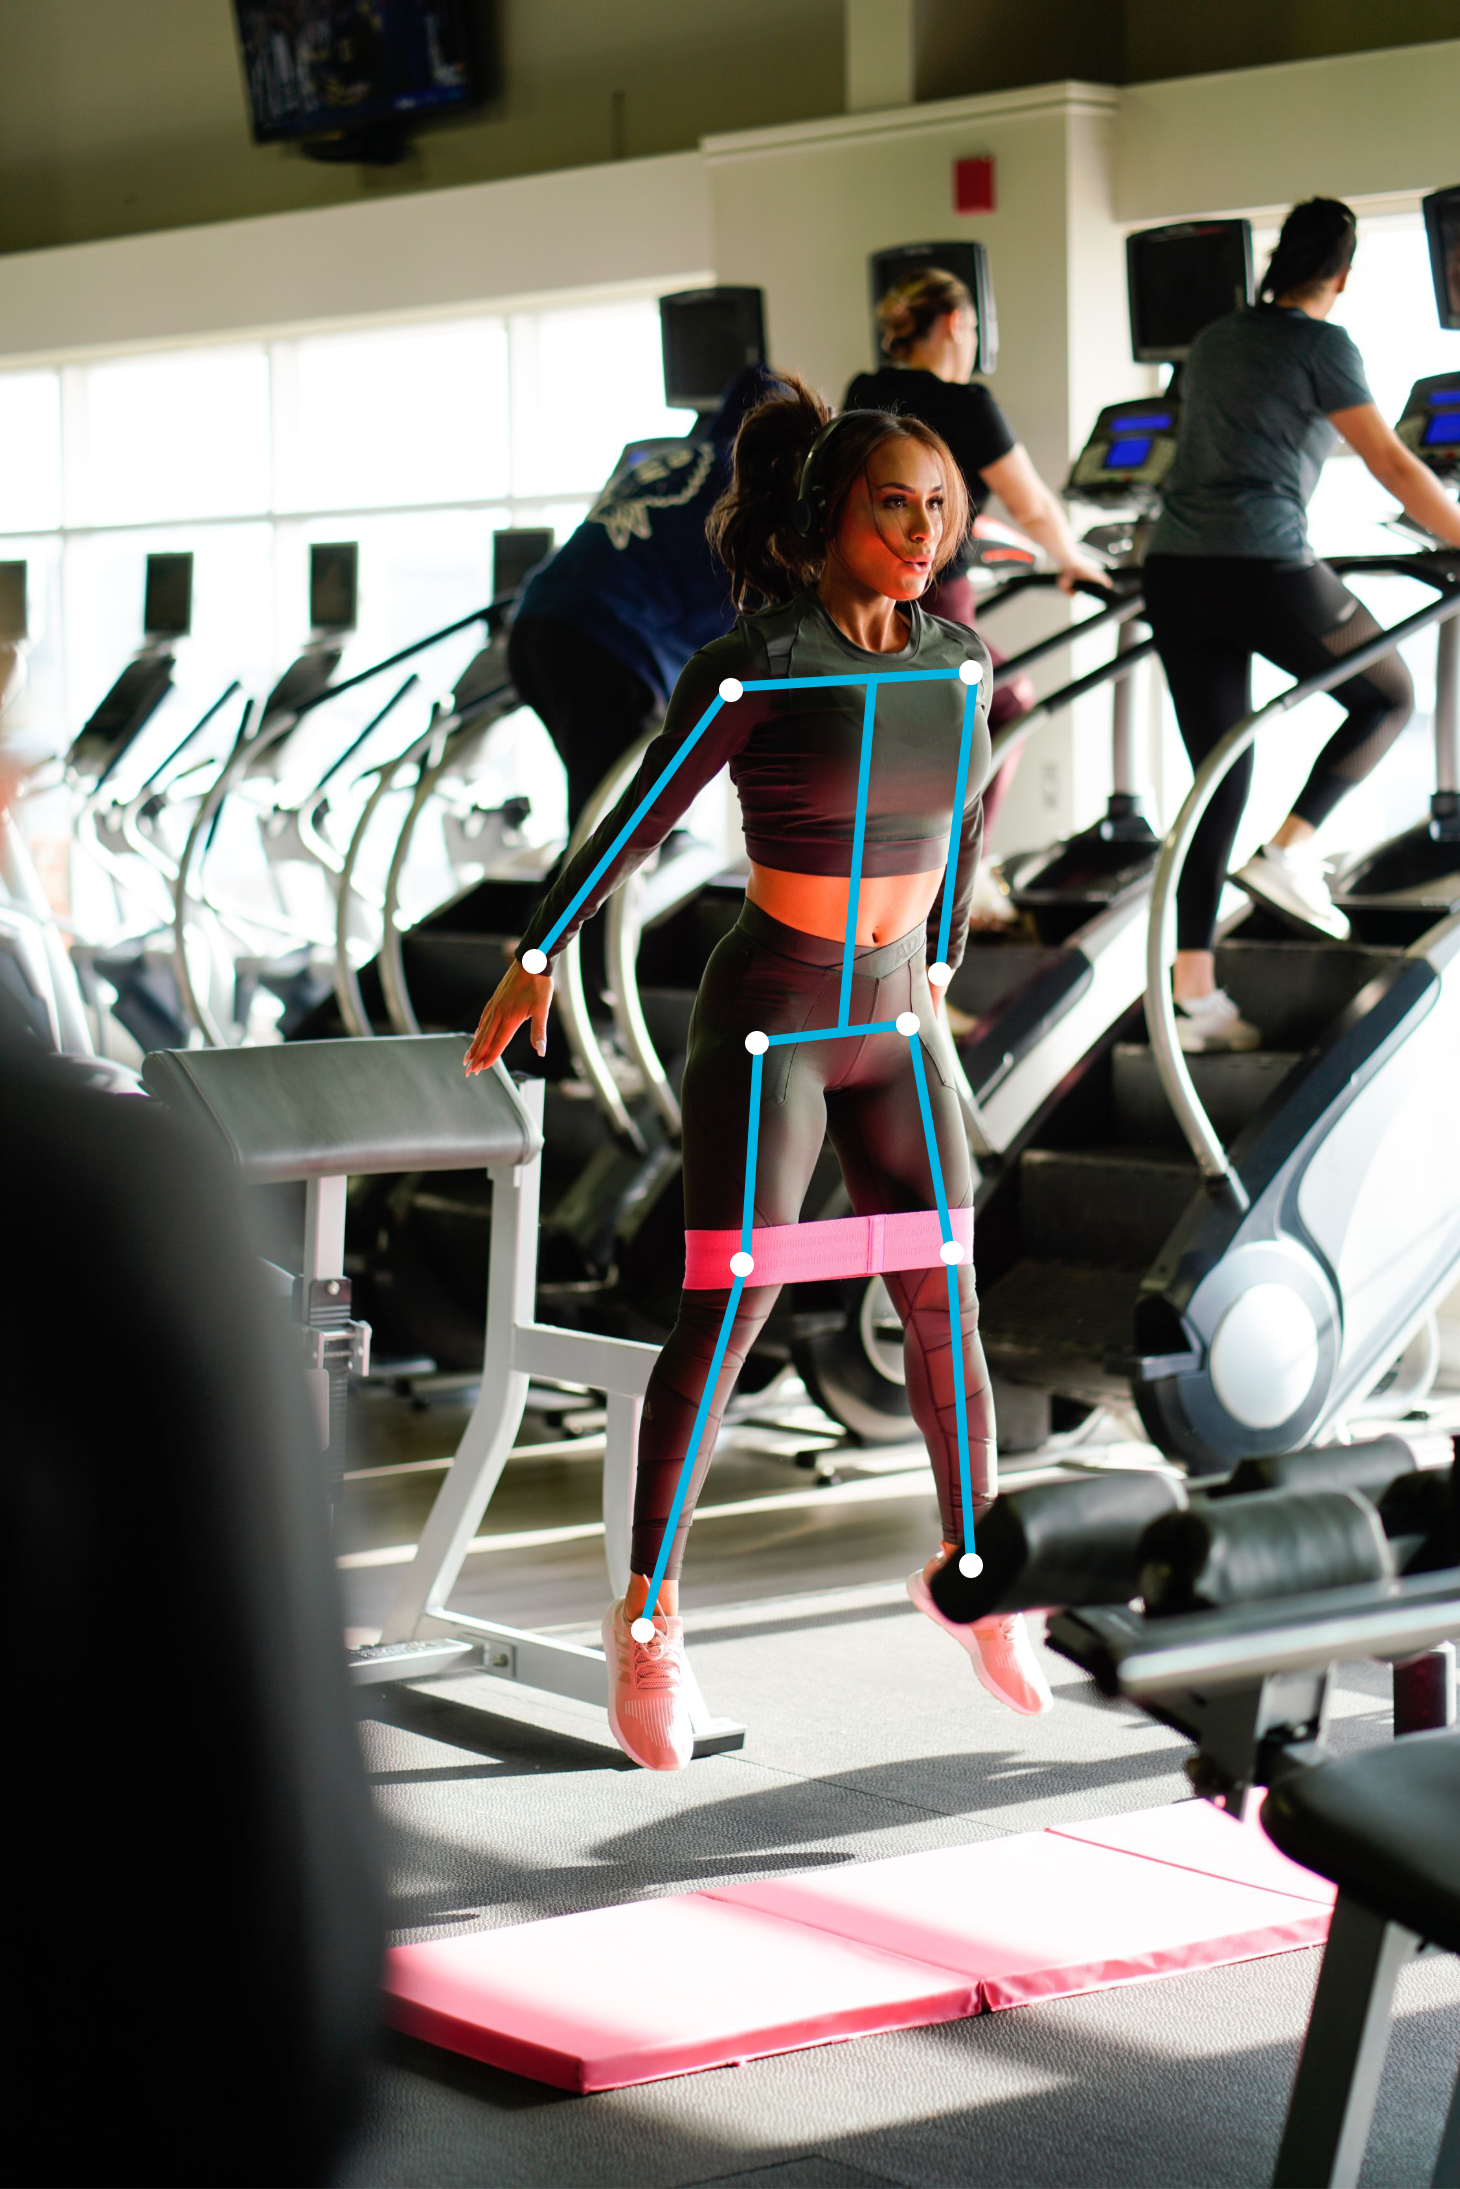 a woman working out with pose estimation on her.